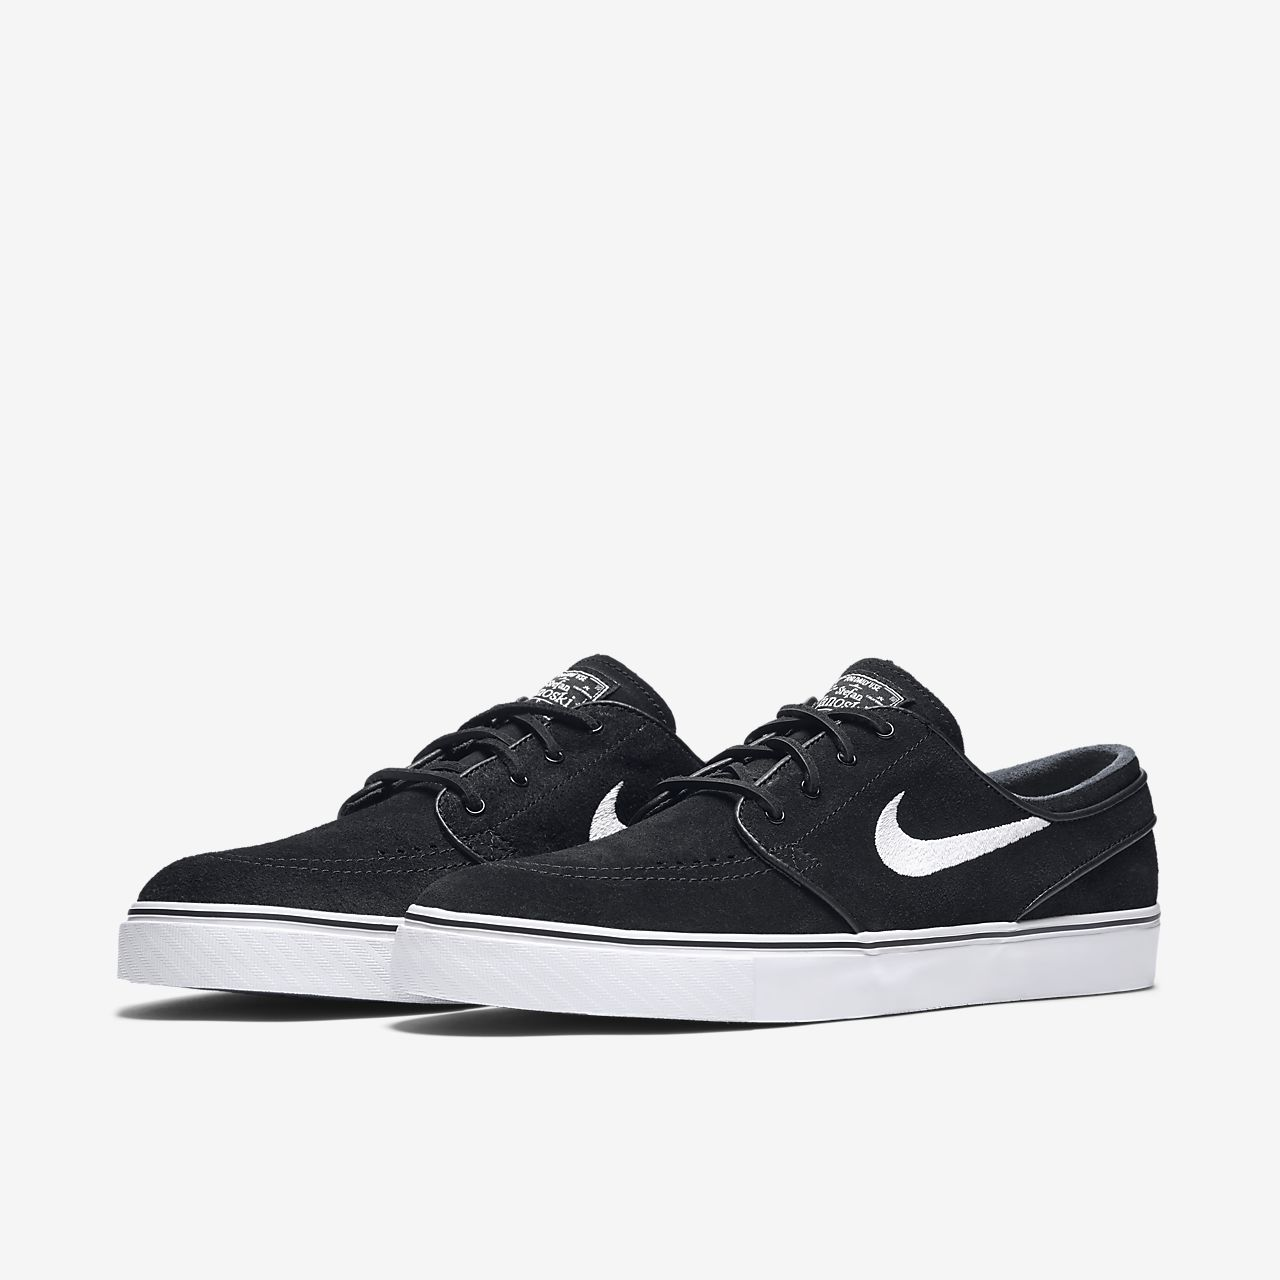 check out a3f77 a67ab ... Nike SB Zoom Stefan Janoski OG Men s Skate Shoe